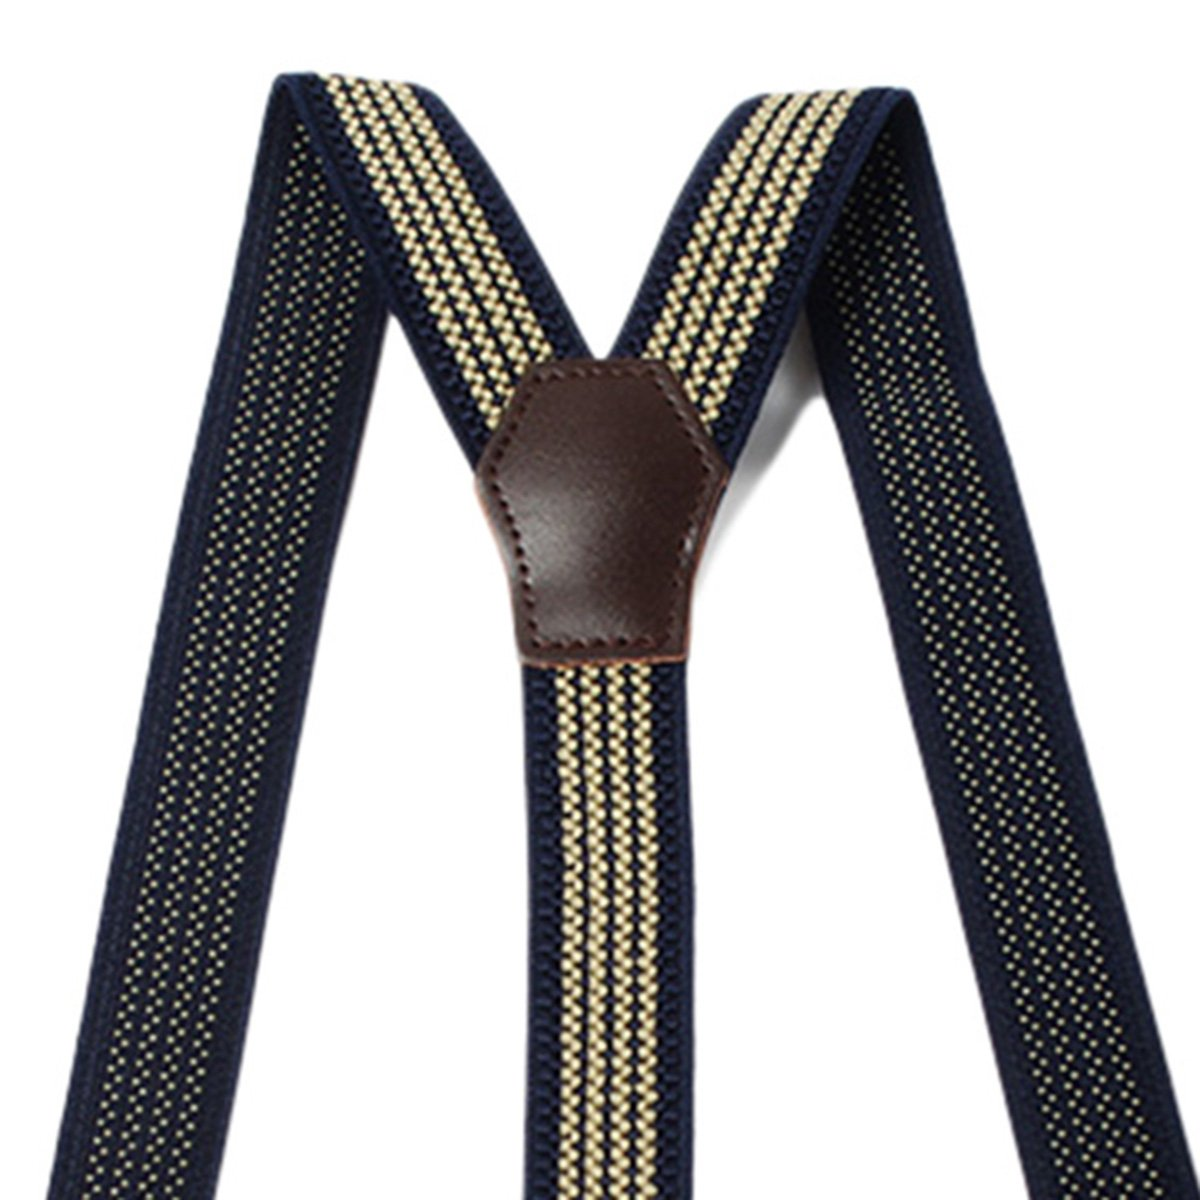 Men Vintage Buttonhole Suspenders Women Adjustable Elastic Trousers Braces